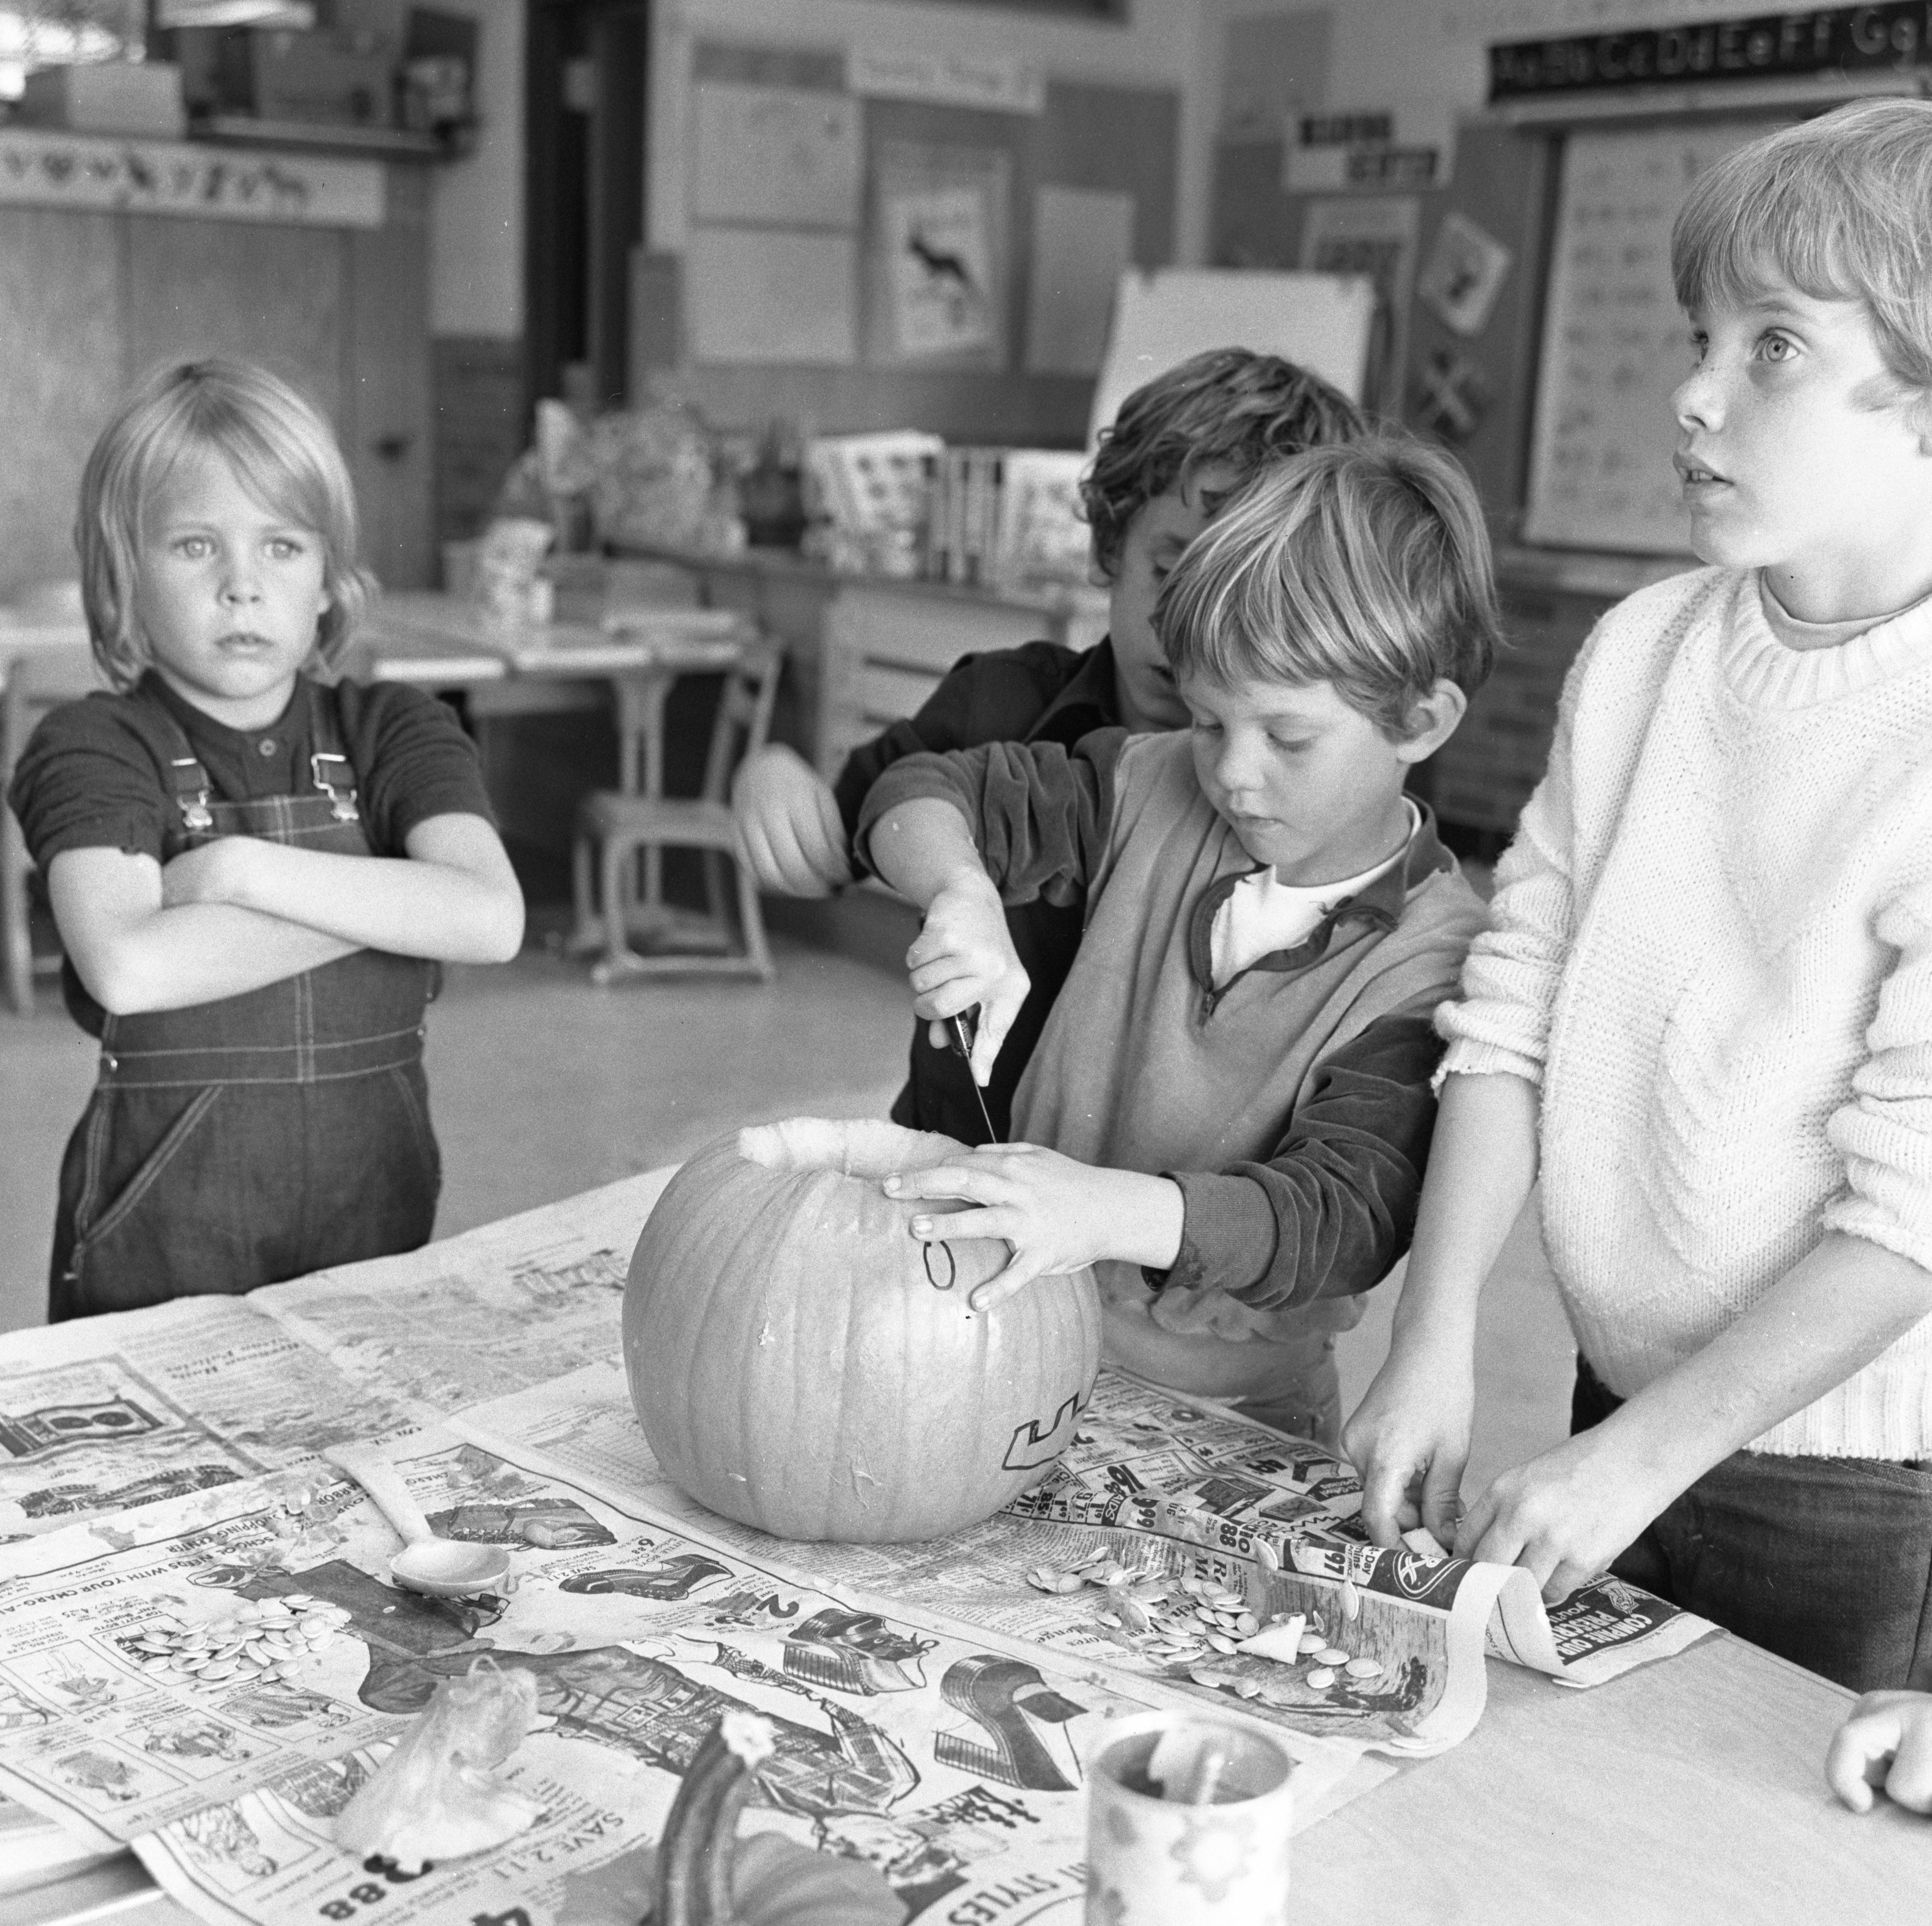 Pattengill Elementary Students Carve Halloween Pumpkins, October 1973 image